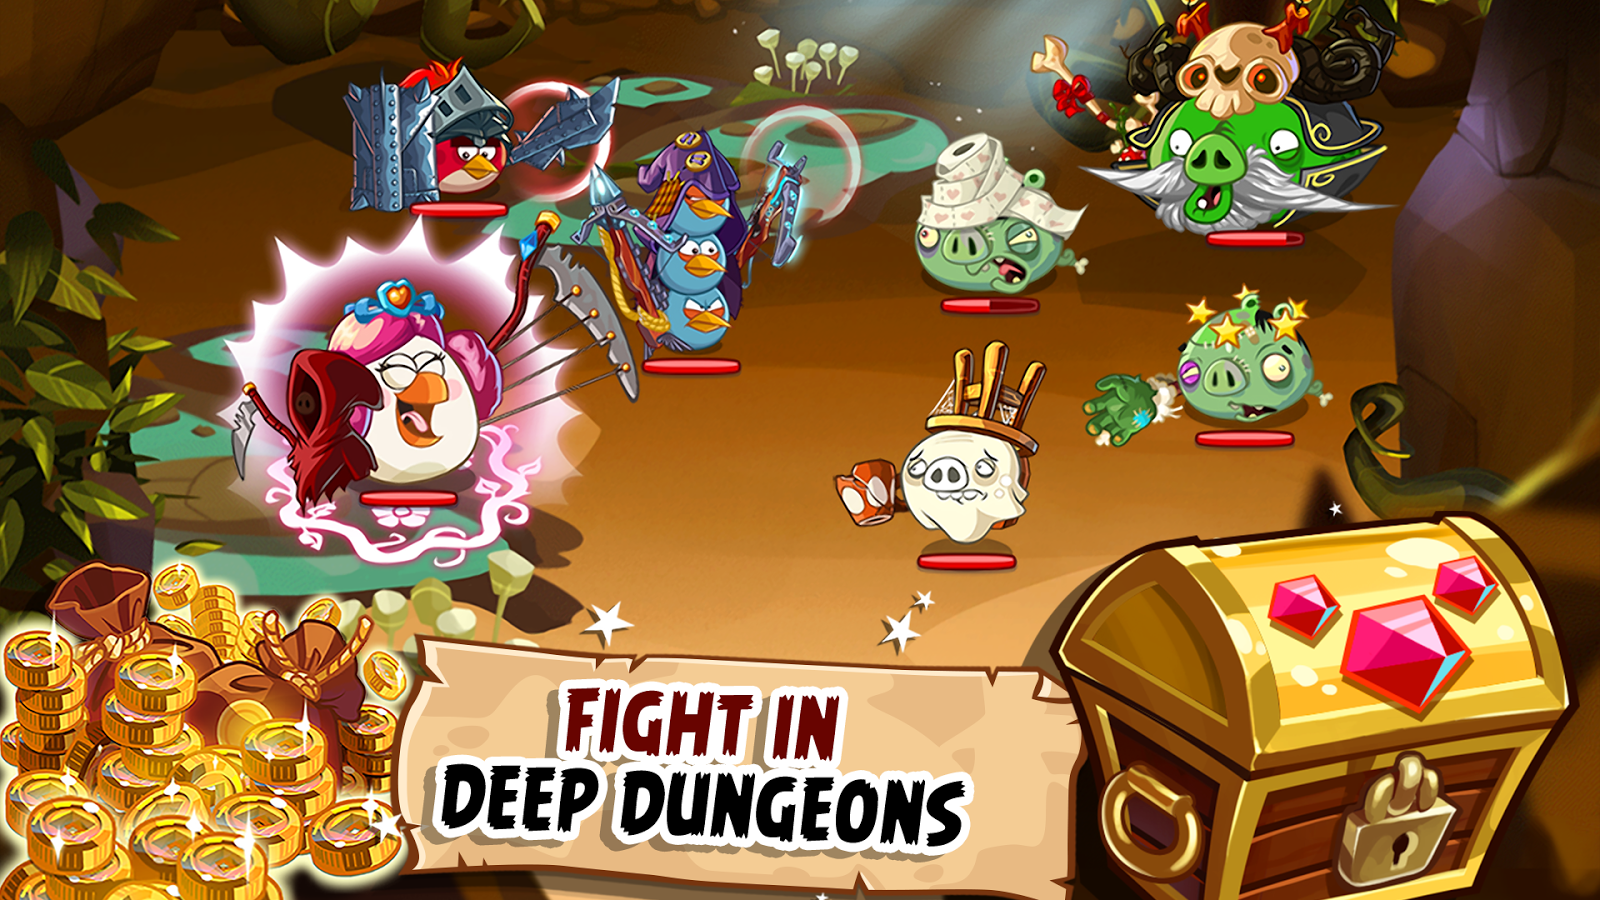 Download Angry Birds Epic Rpg for PC or Computer (Windows